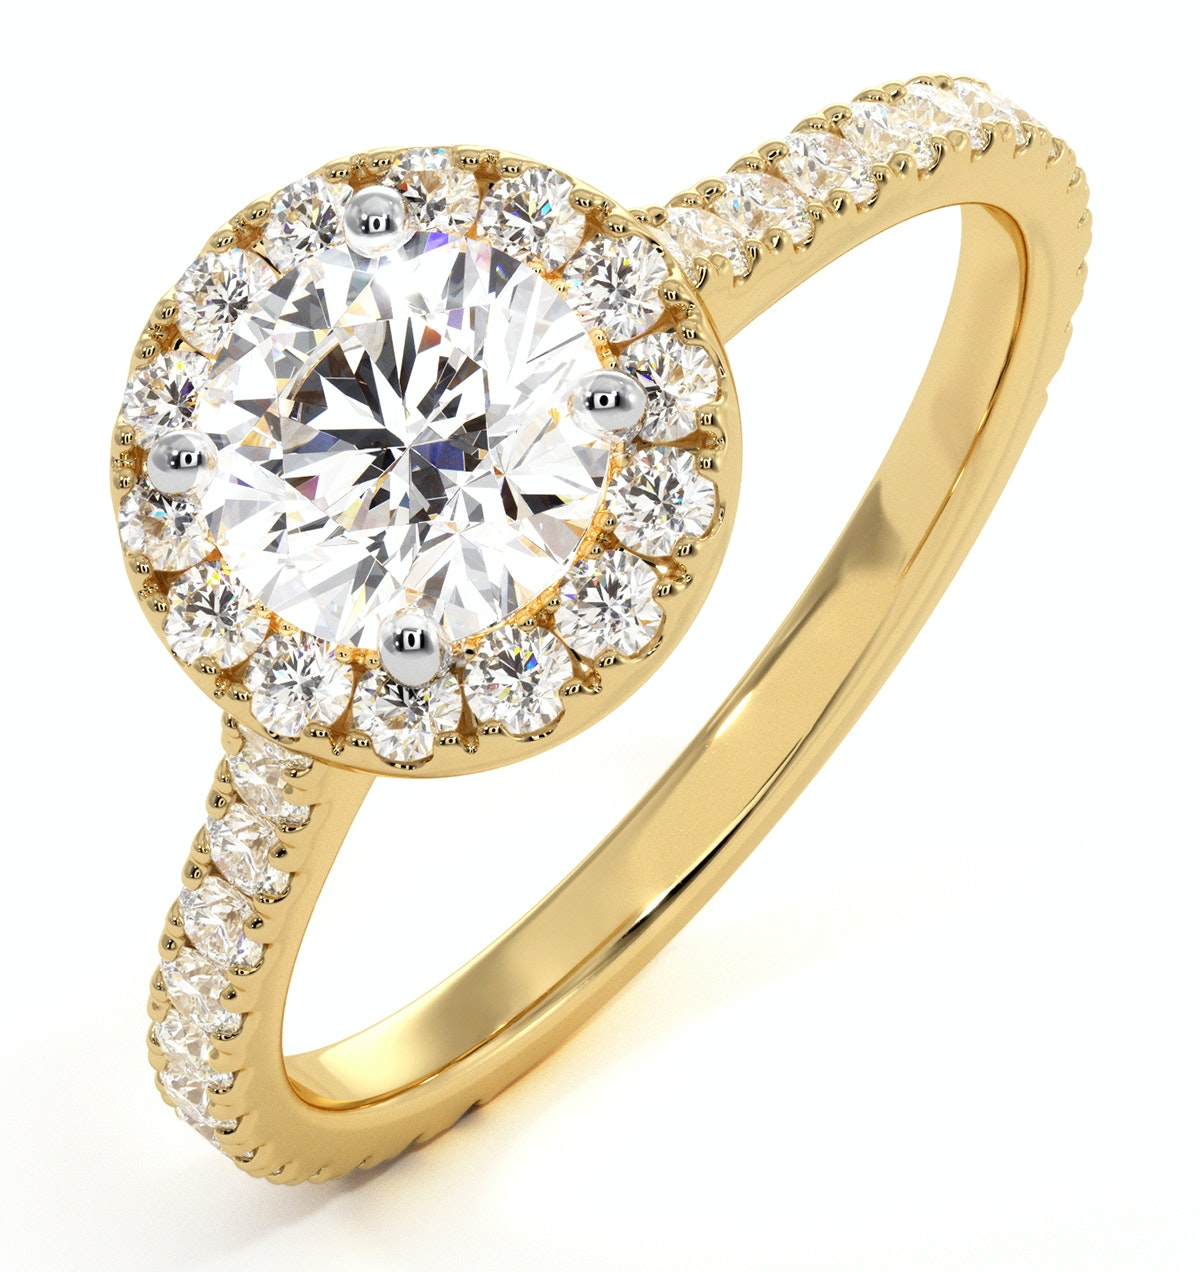 Reina GIA Diamond Halo Engagement Ring in 18K Gold 1.40ct G/VS2